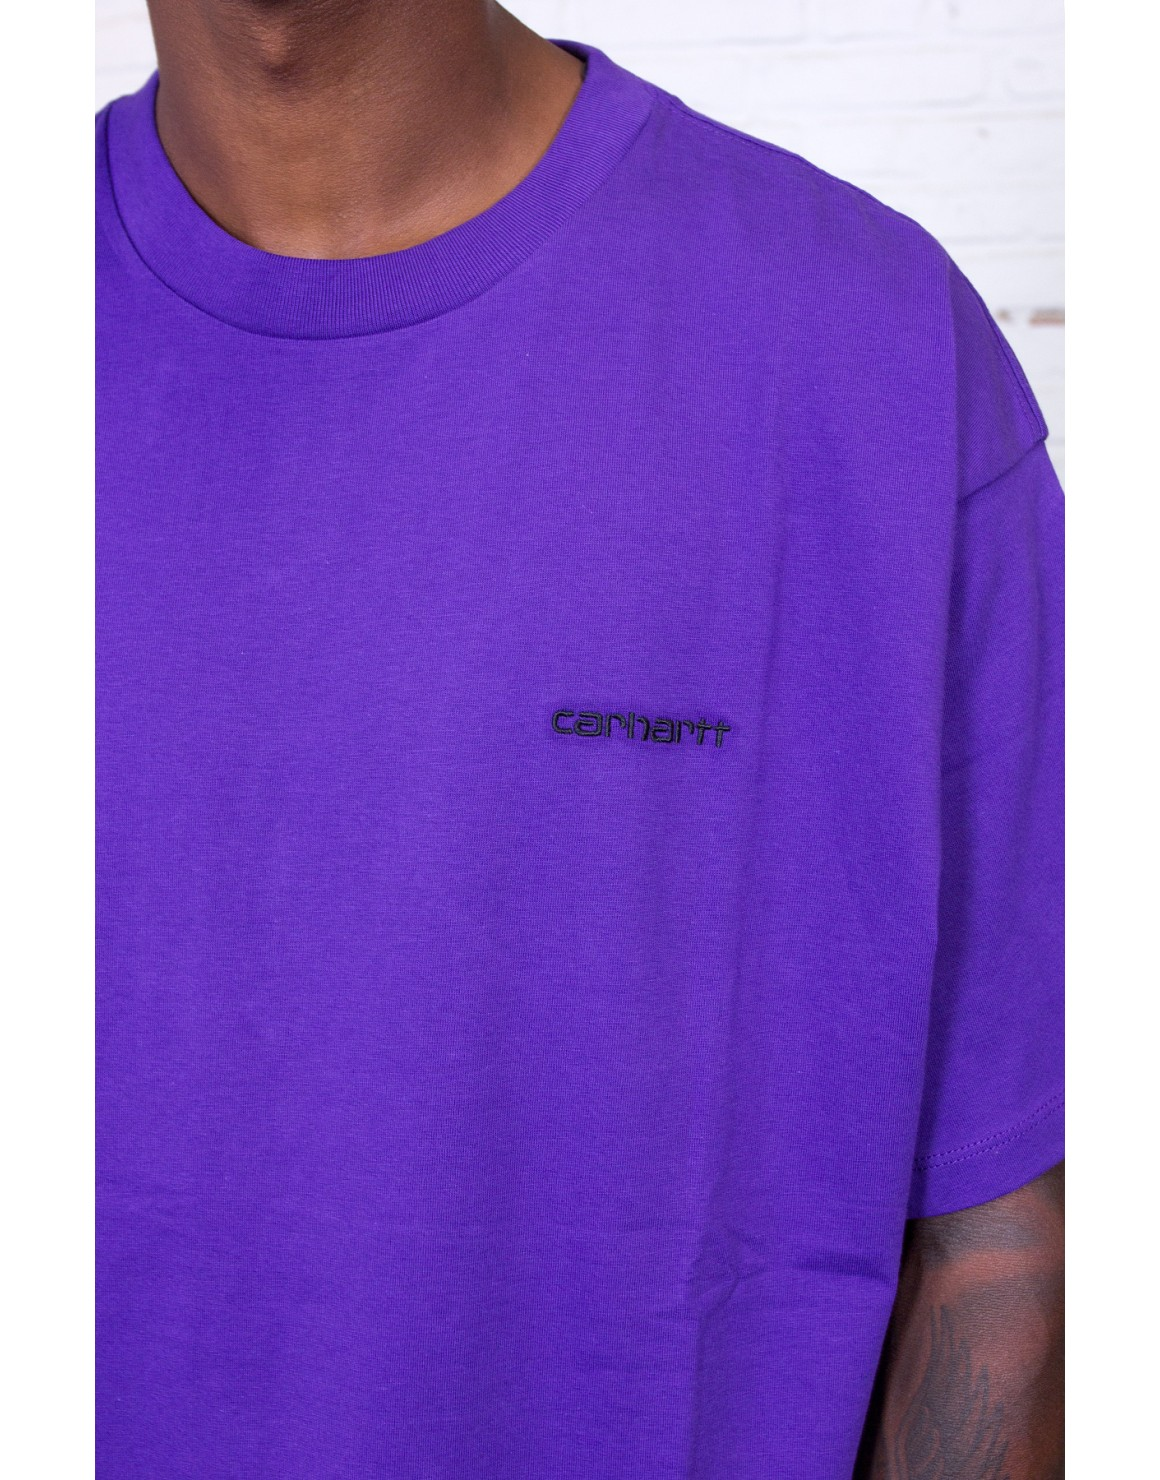 Script Embroidery T Shirt